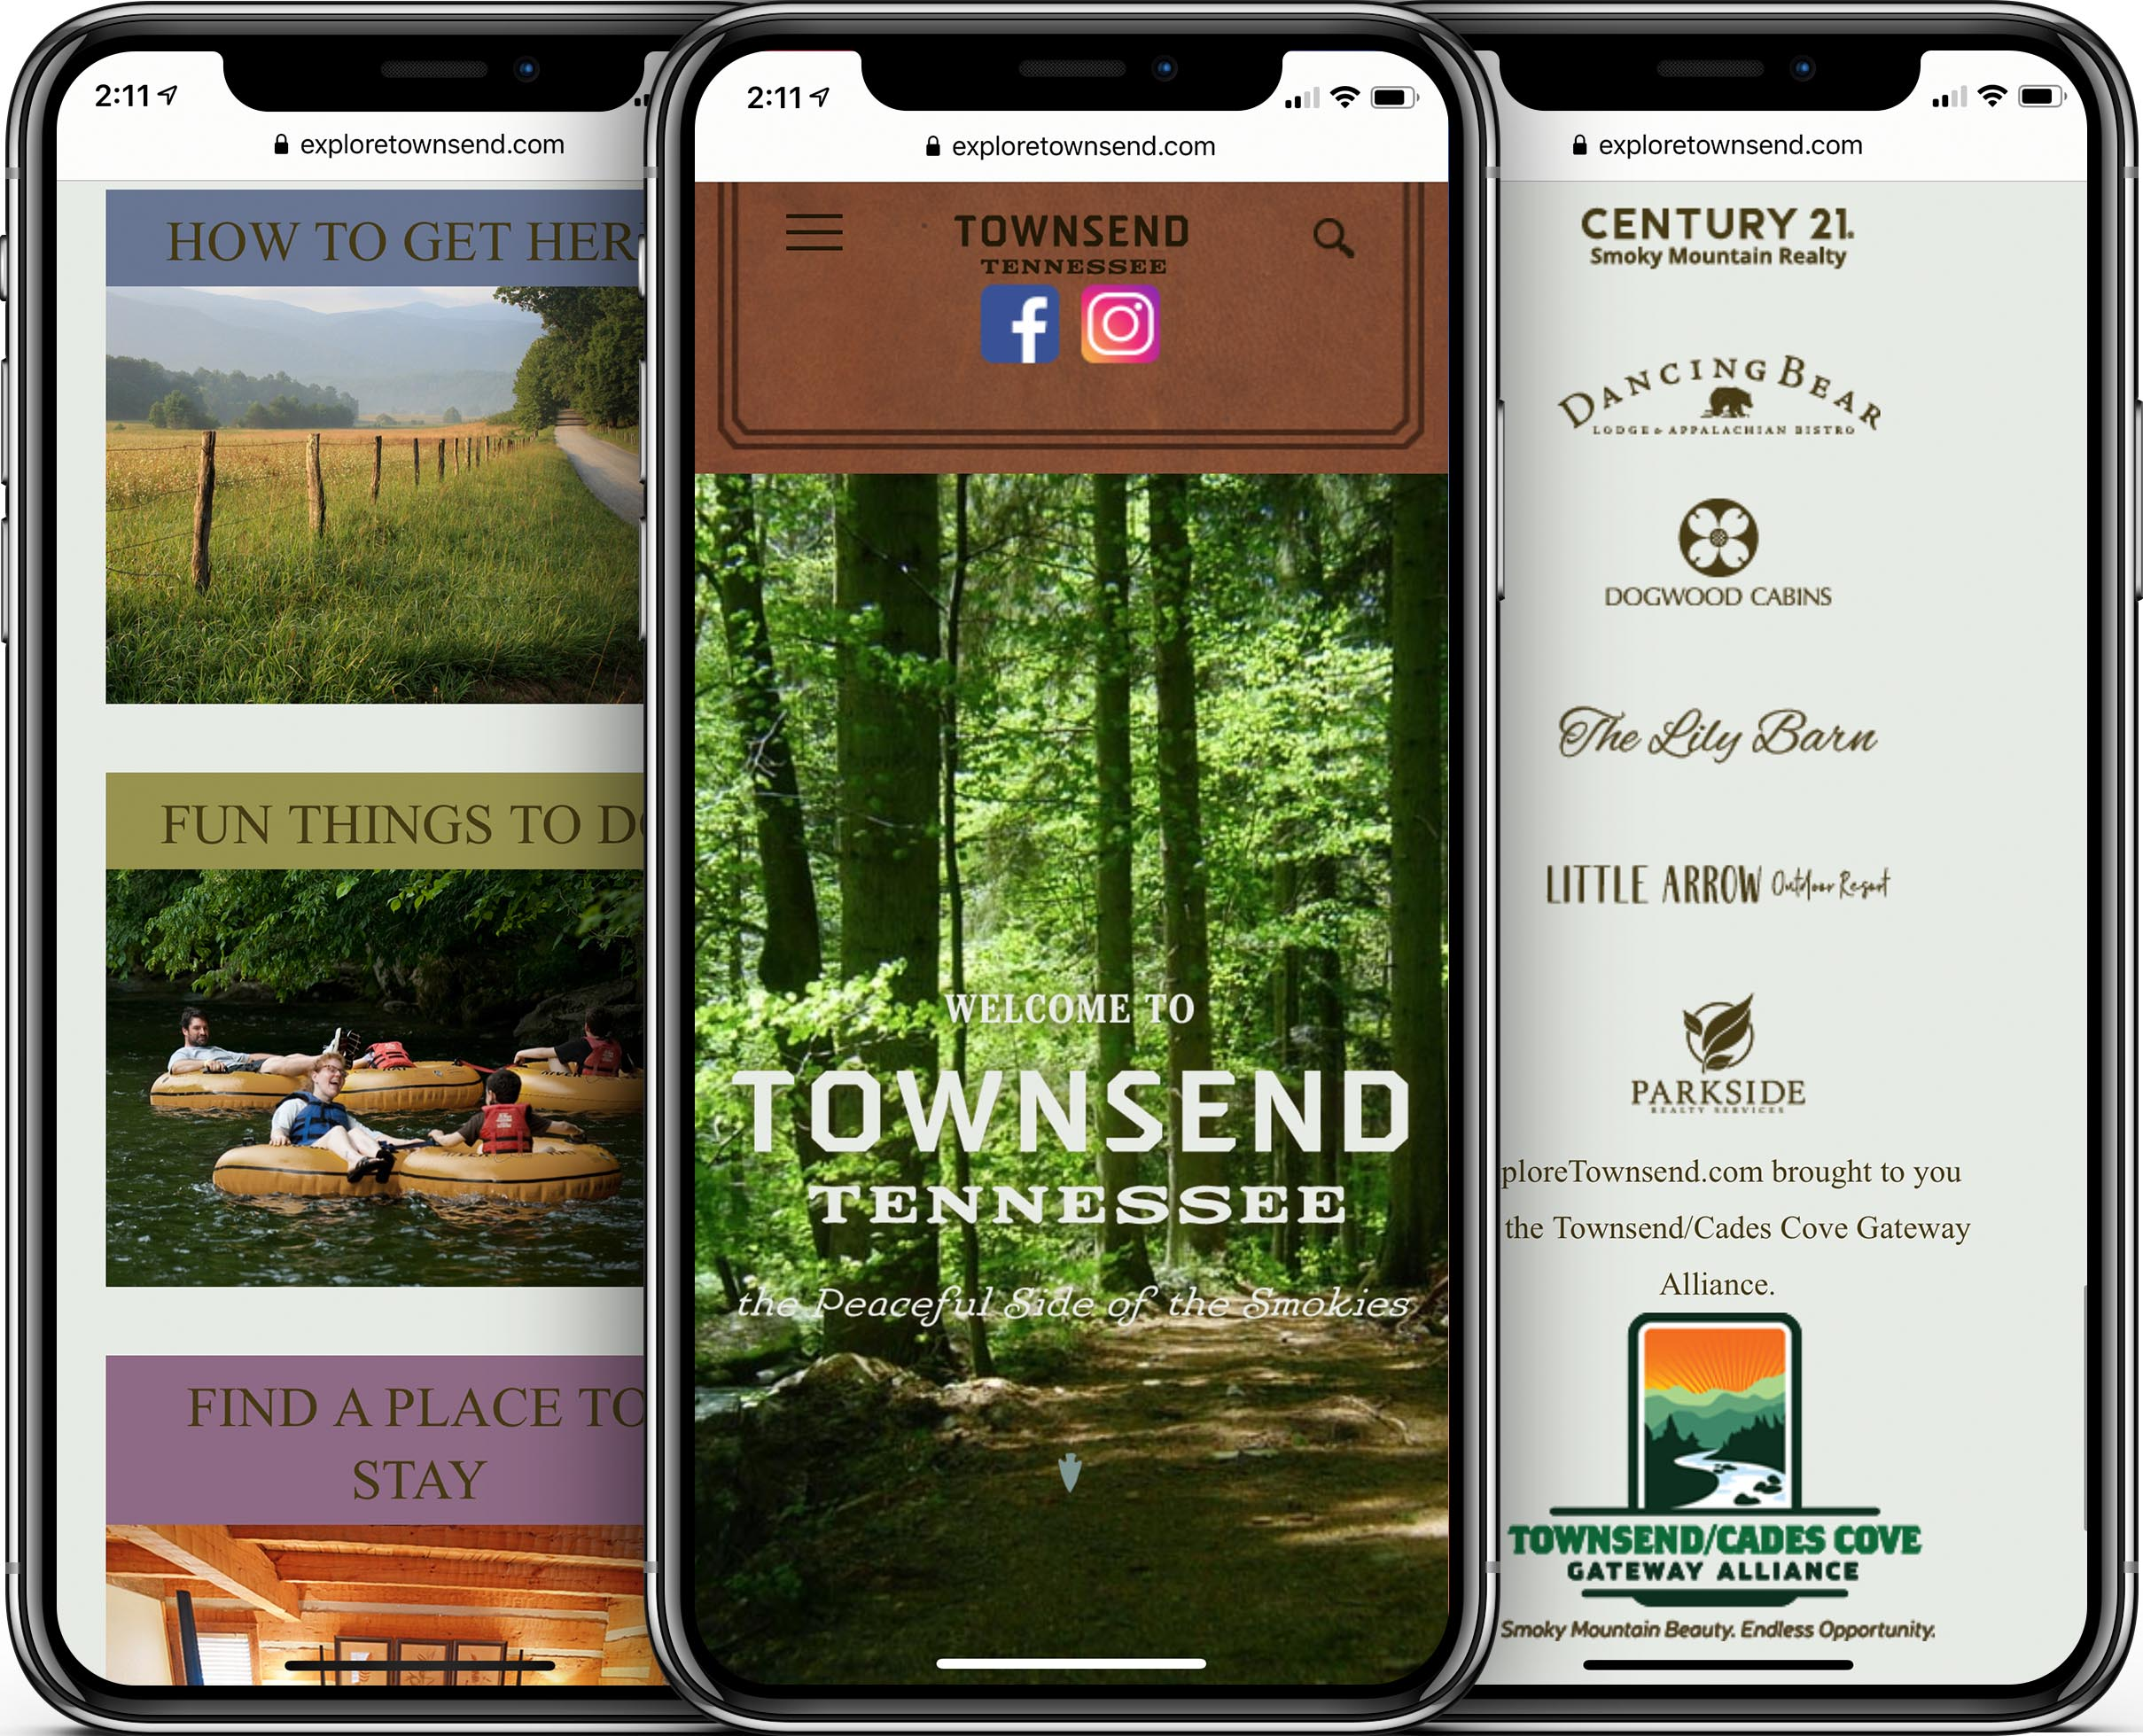 Explore Townsend Mobile-Friendly Web Design